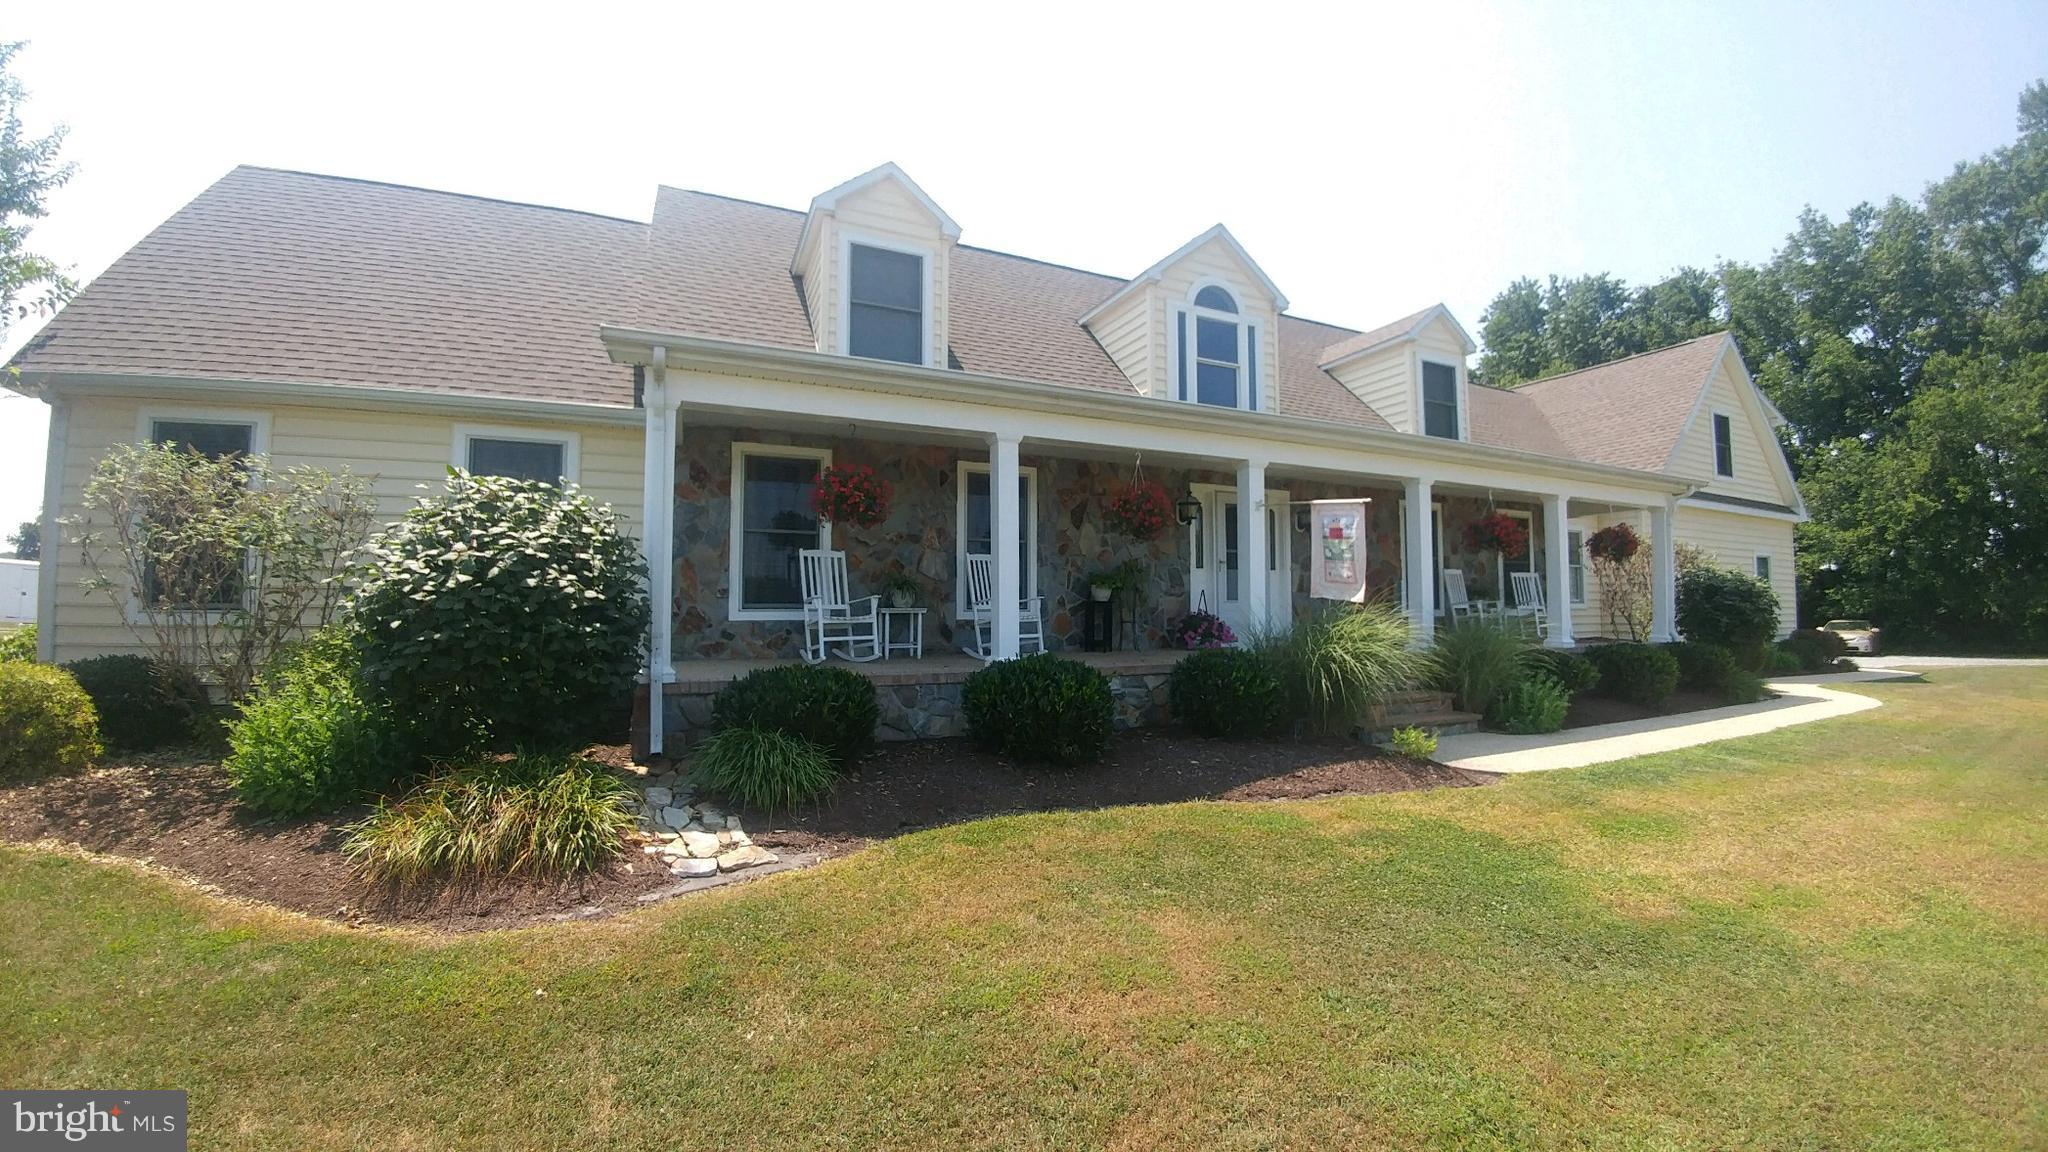 24461 FRIENDSHIP ROAD, PRESTON, MD 21655